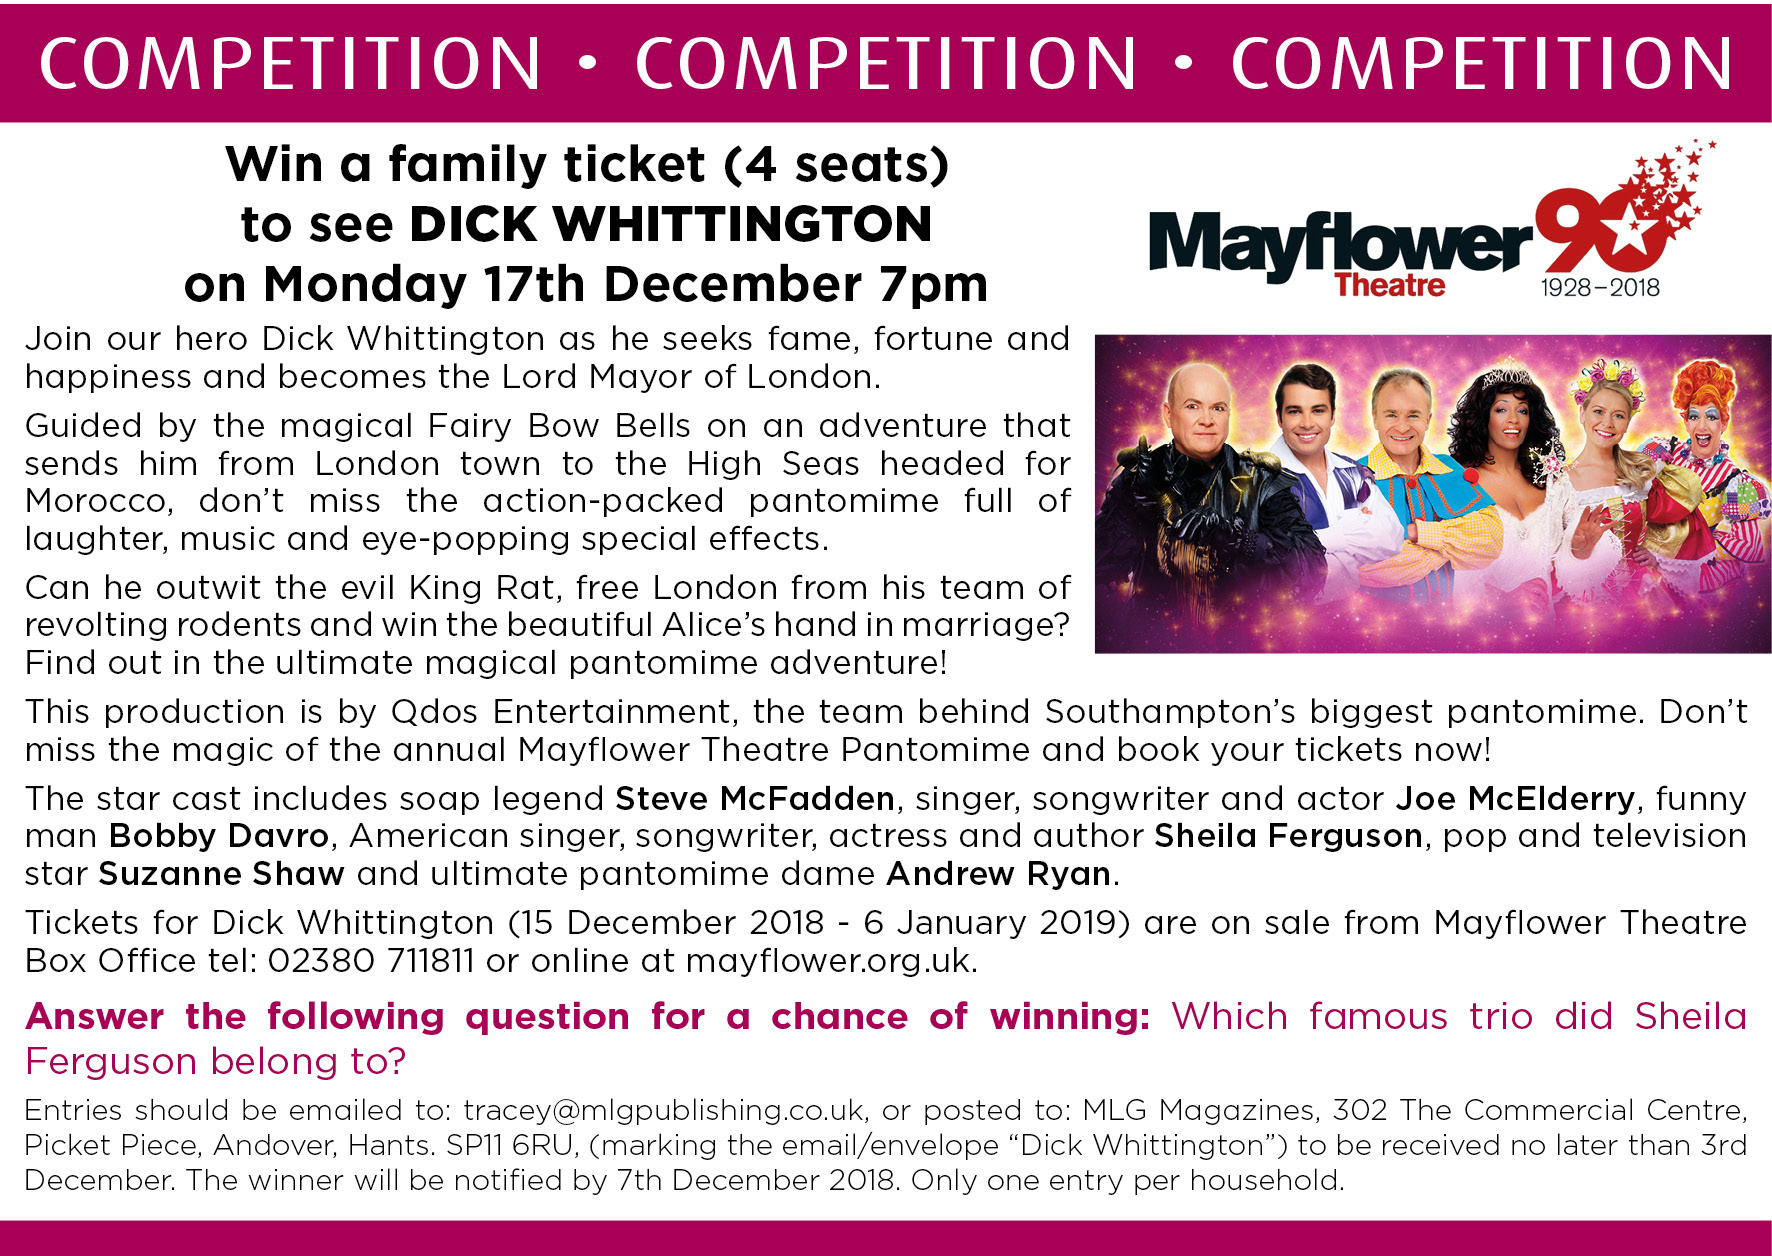 COMPETITION - Mayflower_Dick Whittington_nov18